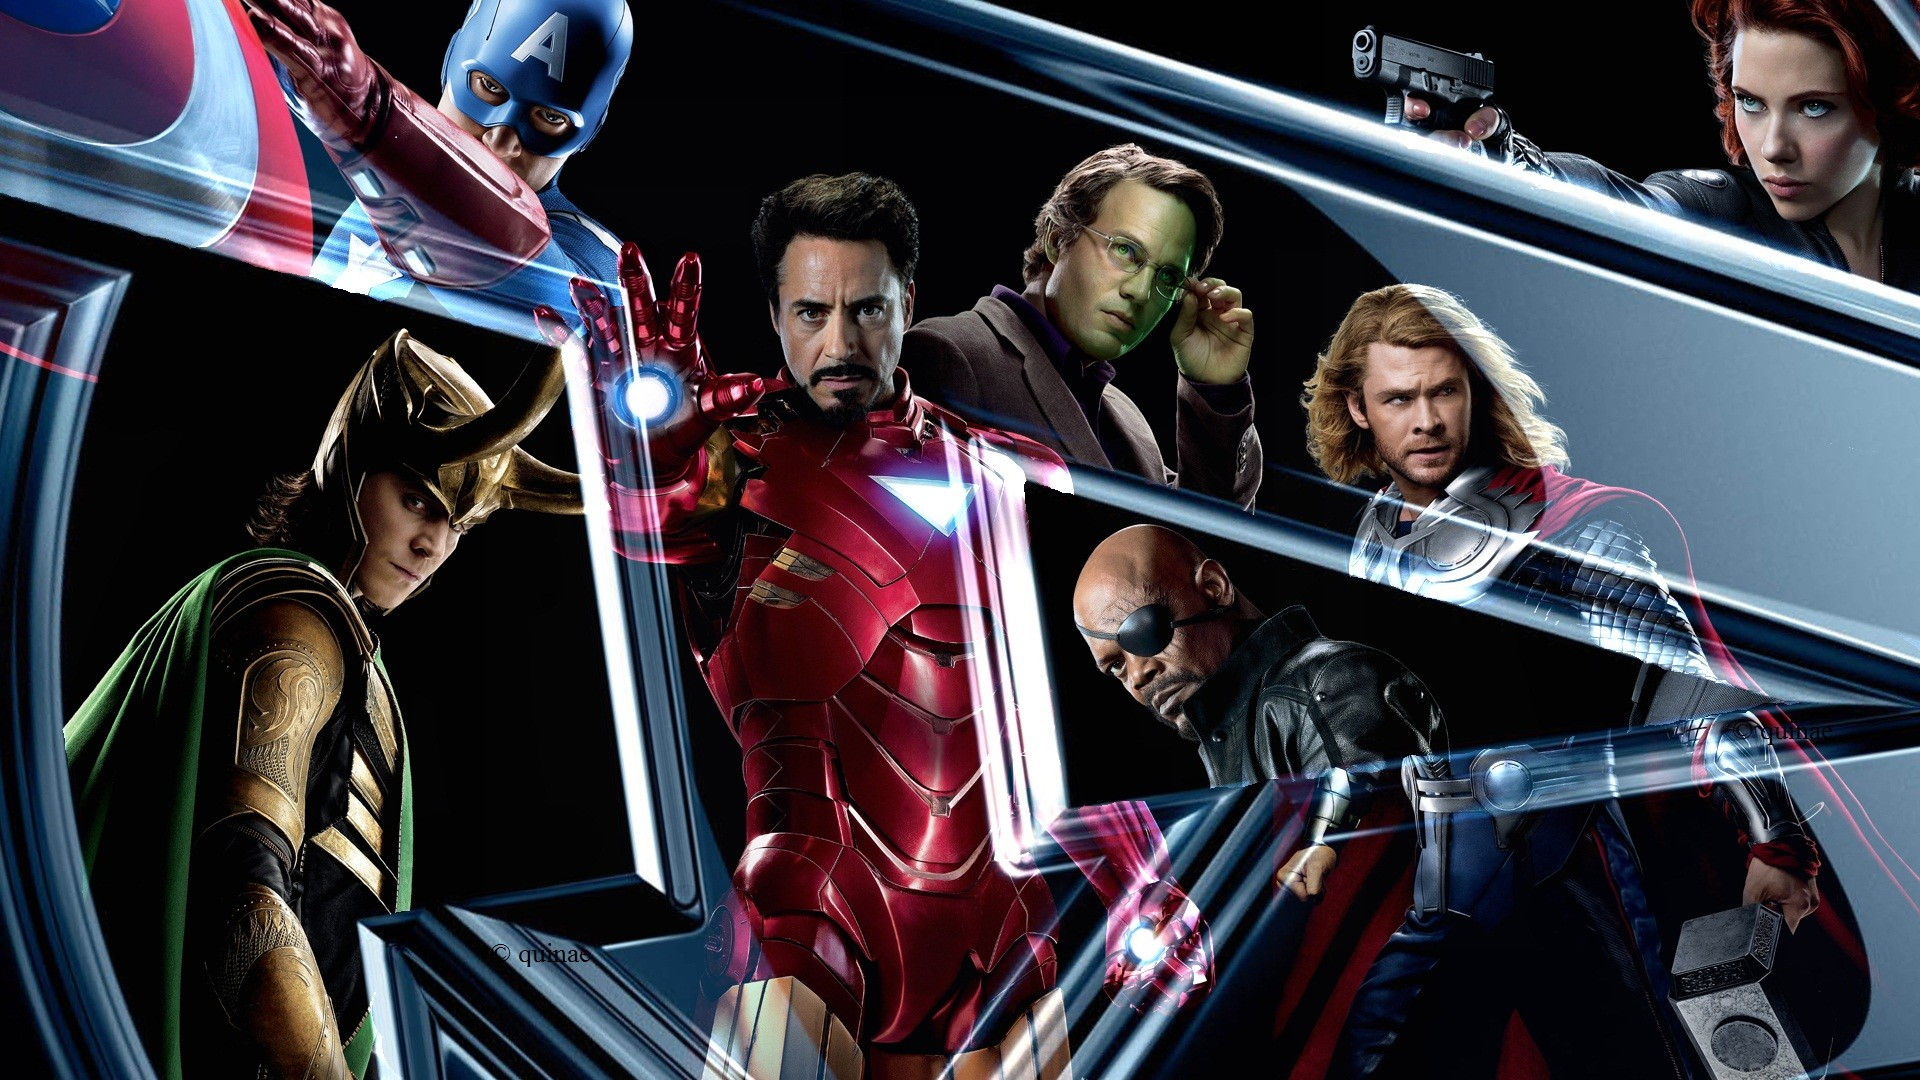 Avengers wallpapers for iPhone iPad and desktop | HD Wallpapers | Pinterest  | Hd wallpaper and Wallpaper